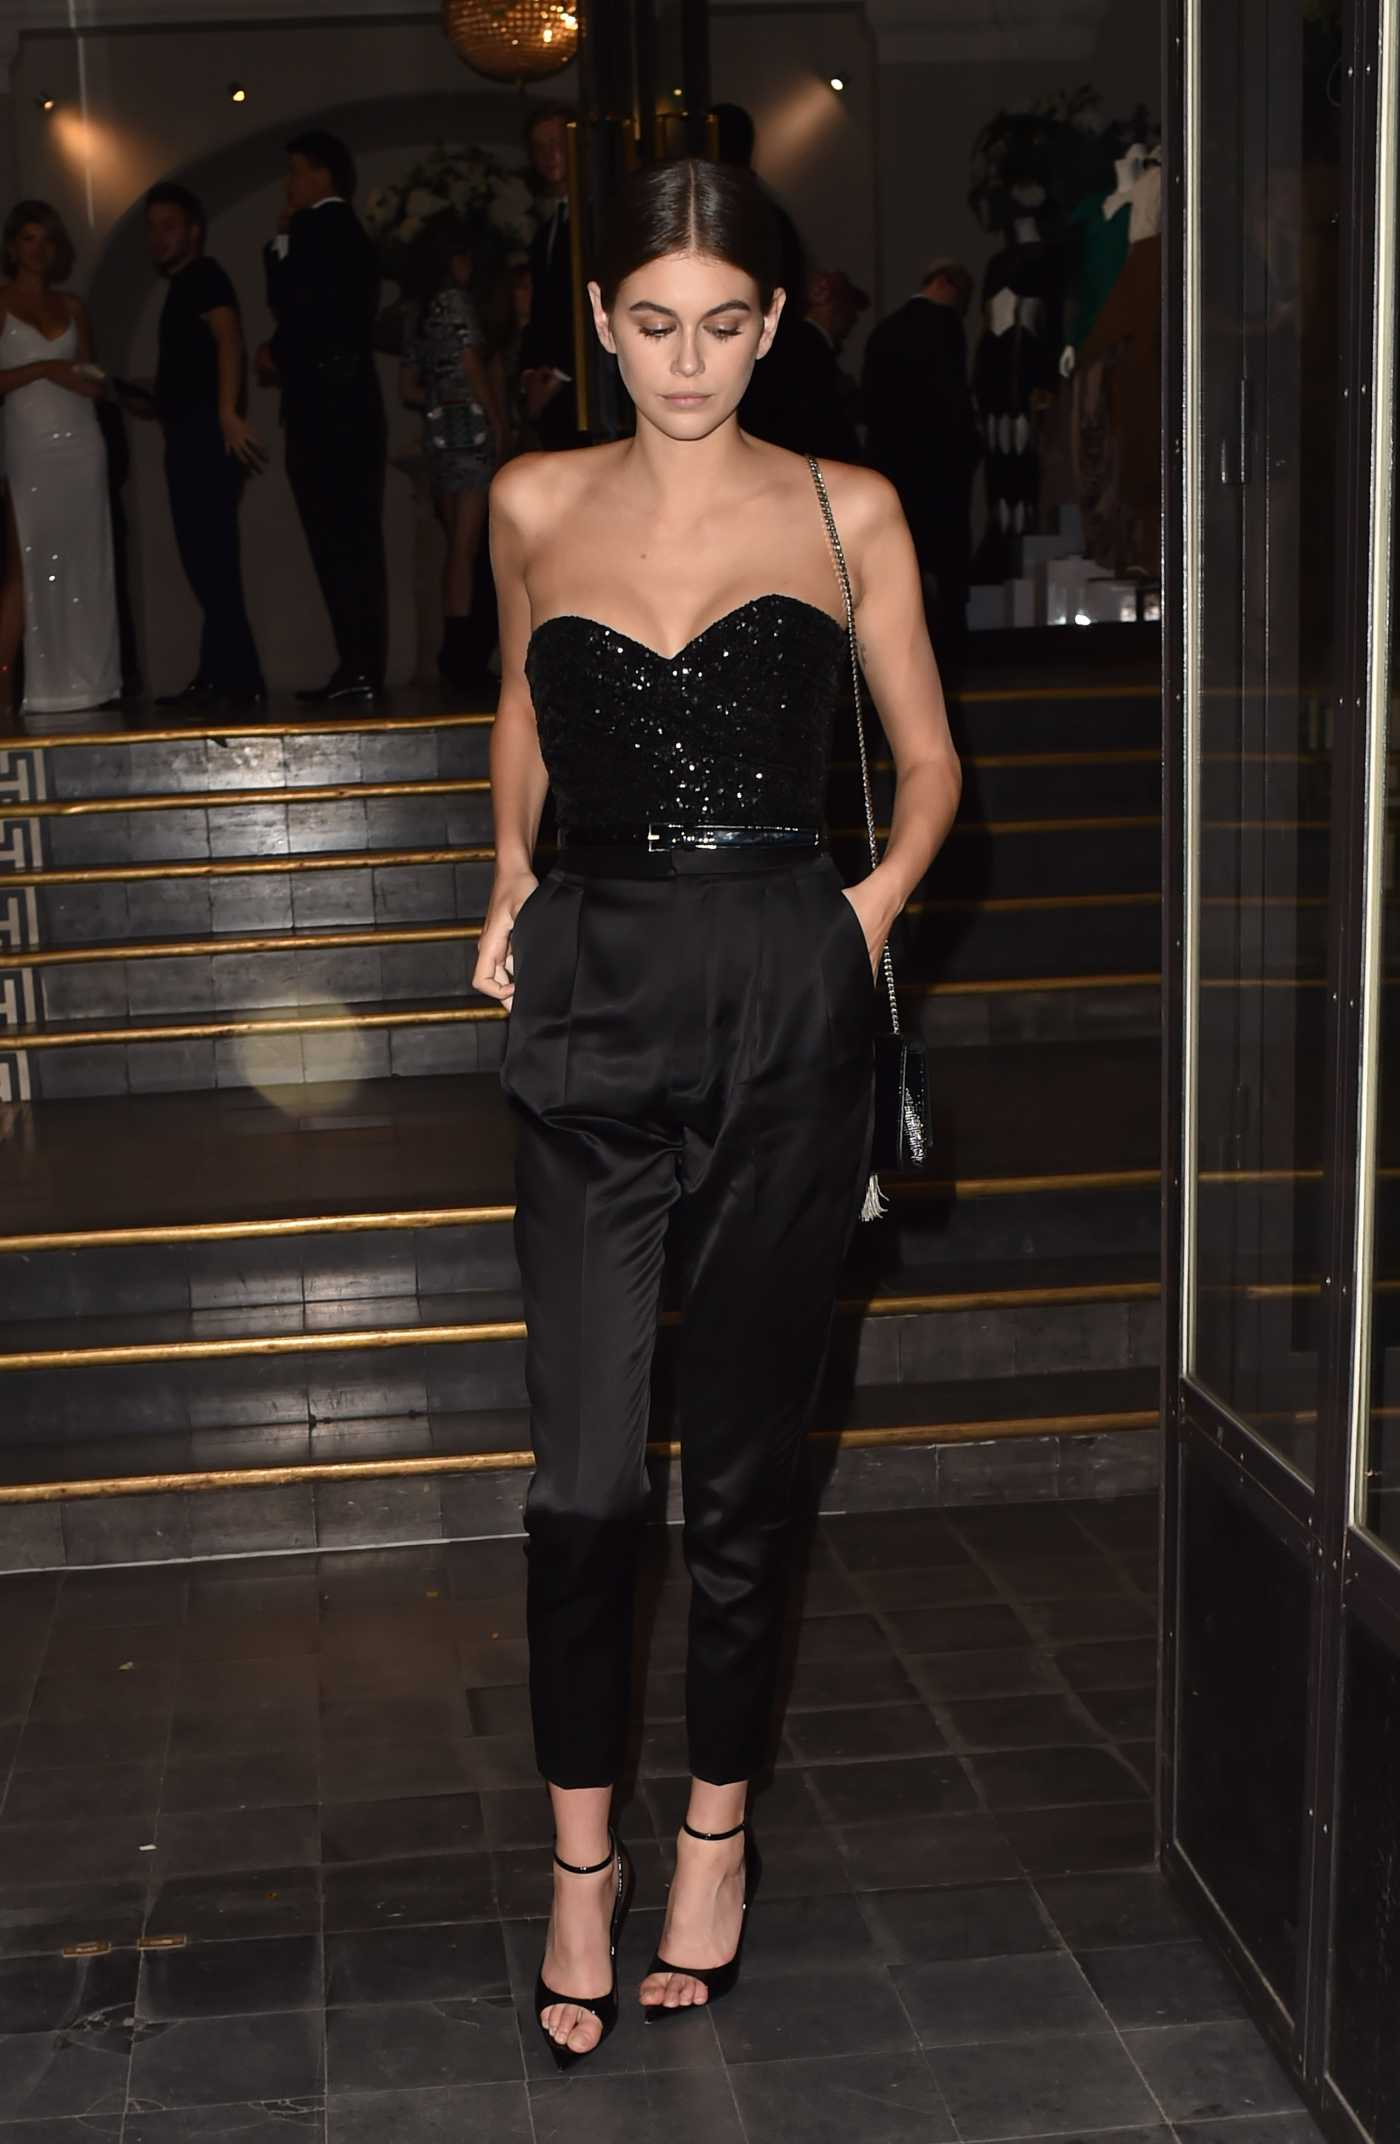 Kaia Gerber in a Black Pants Arrives at the Vogue Party During 2019 Paris Fashion Week in Paris 07/02/2019